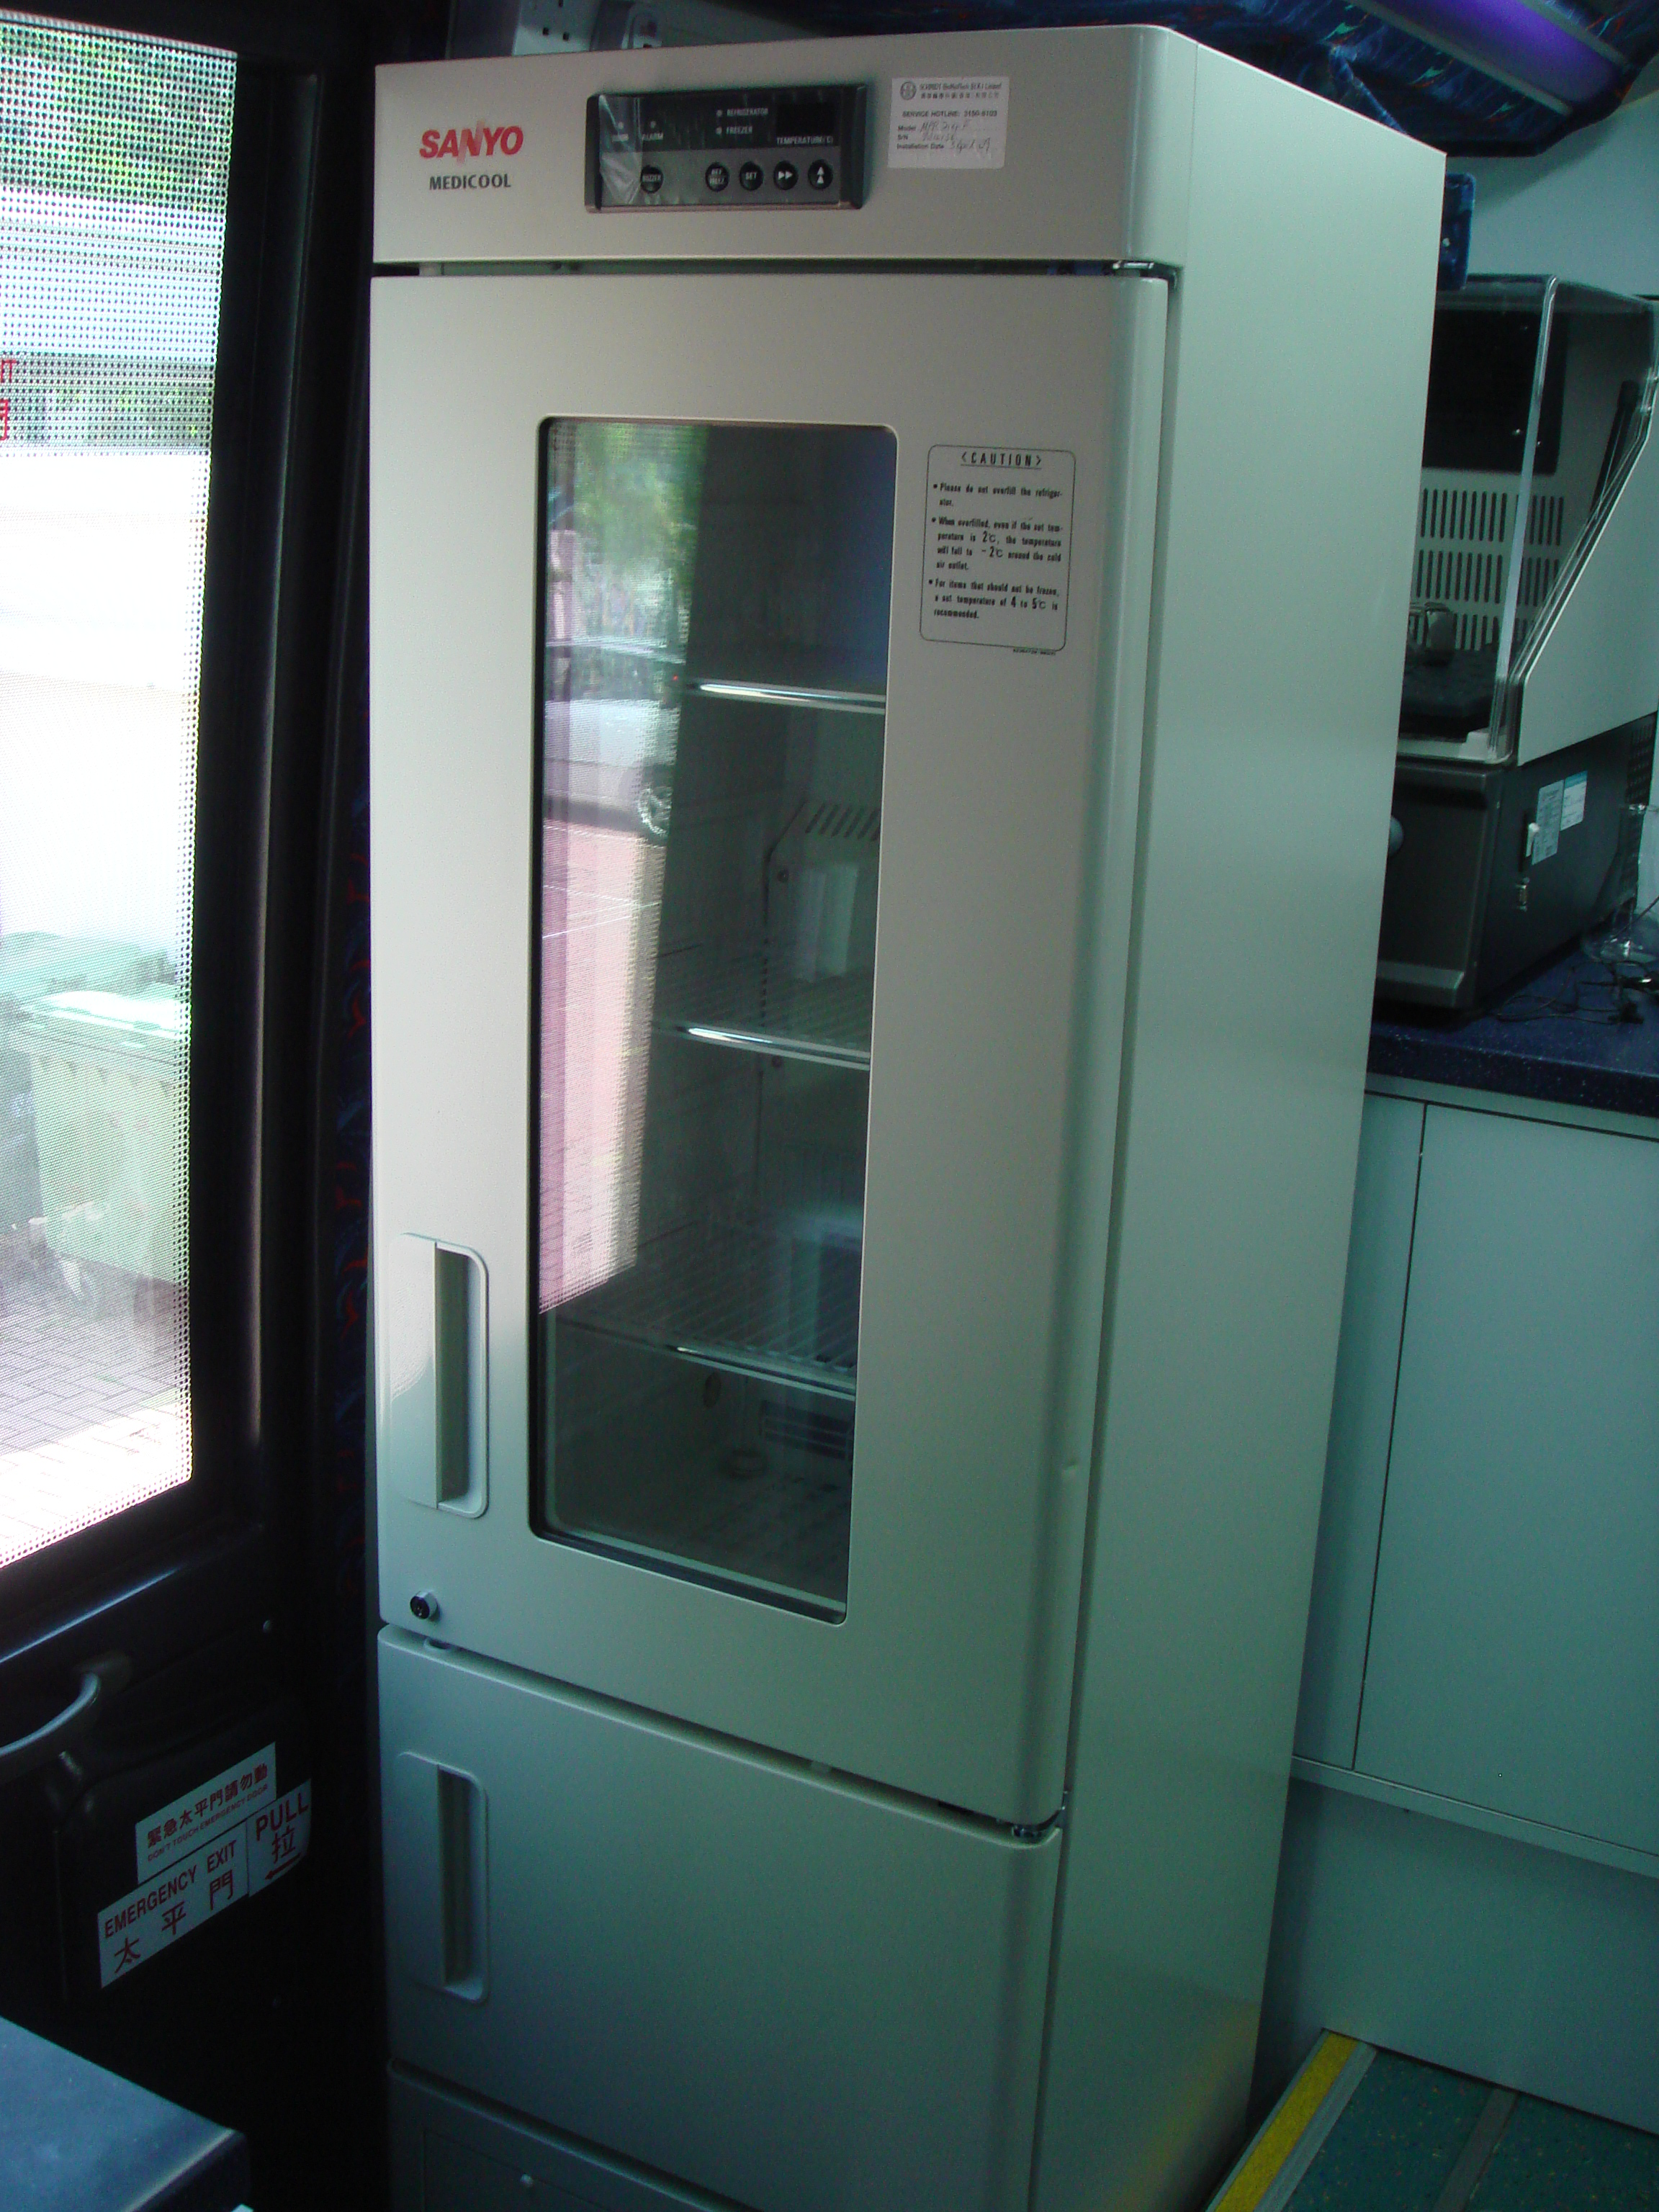 A refrigerator for microbiology experiments